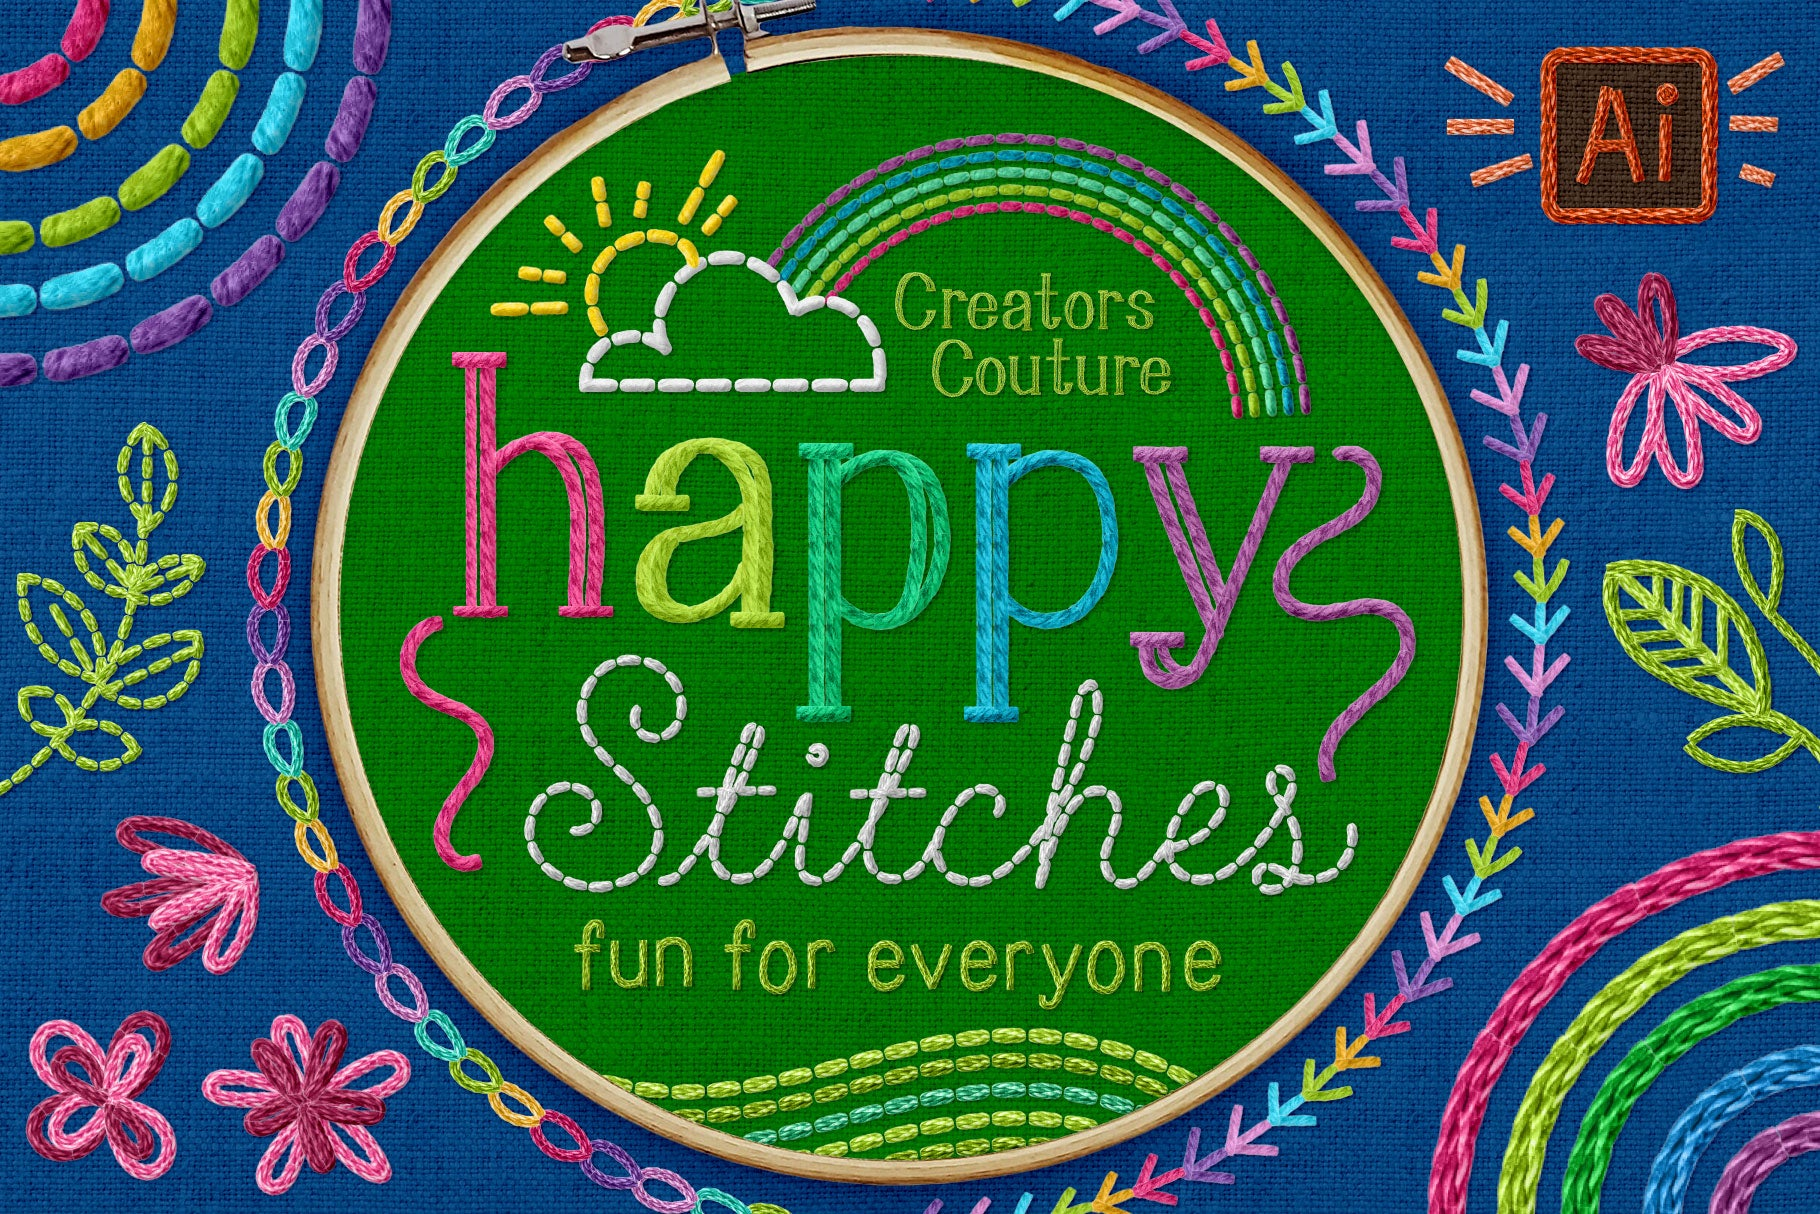 Happy Stitches! Adobe Illustrator Brushes for a Hand-Embroidered Illustration Effect - Creators Couture